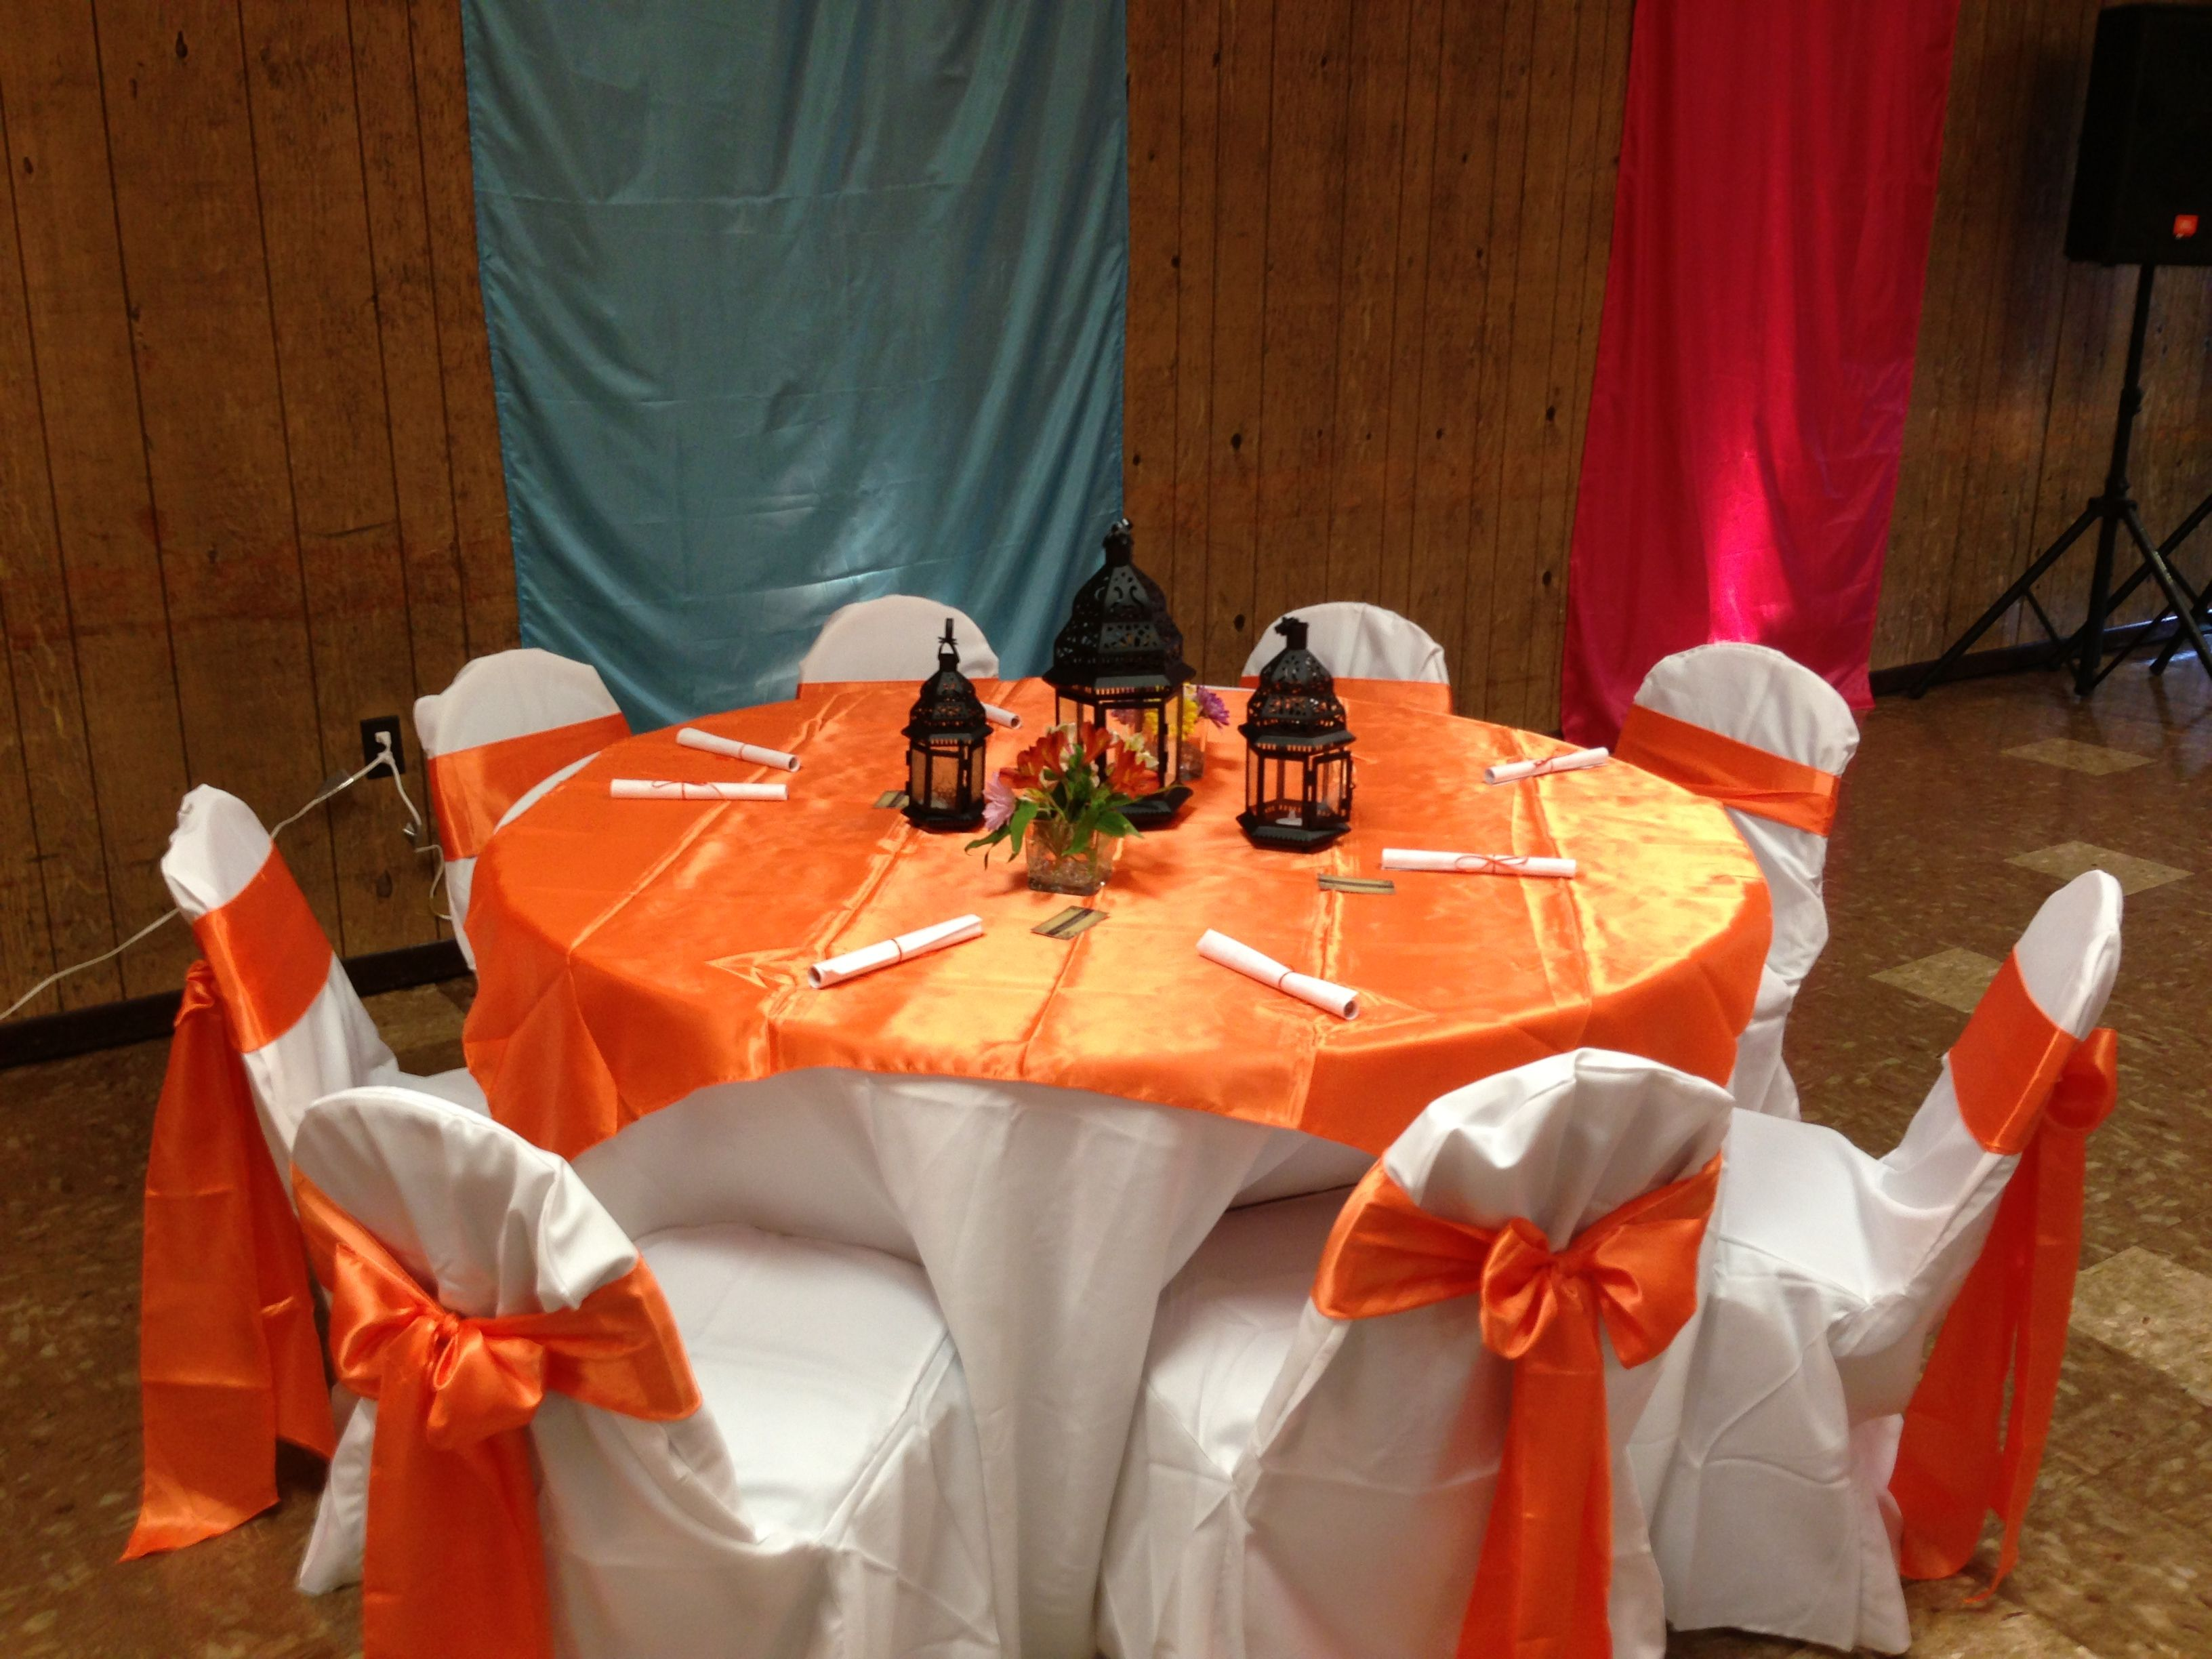 Guest Table With Morrocan Lamps Centerpieces And Flowers (Orange)